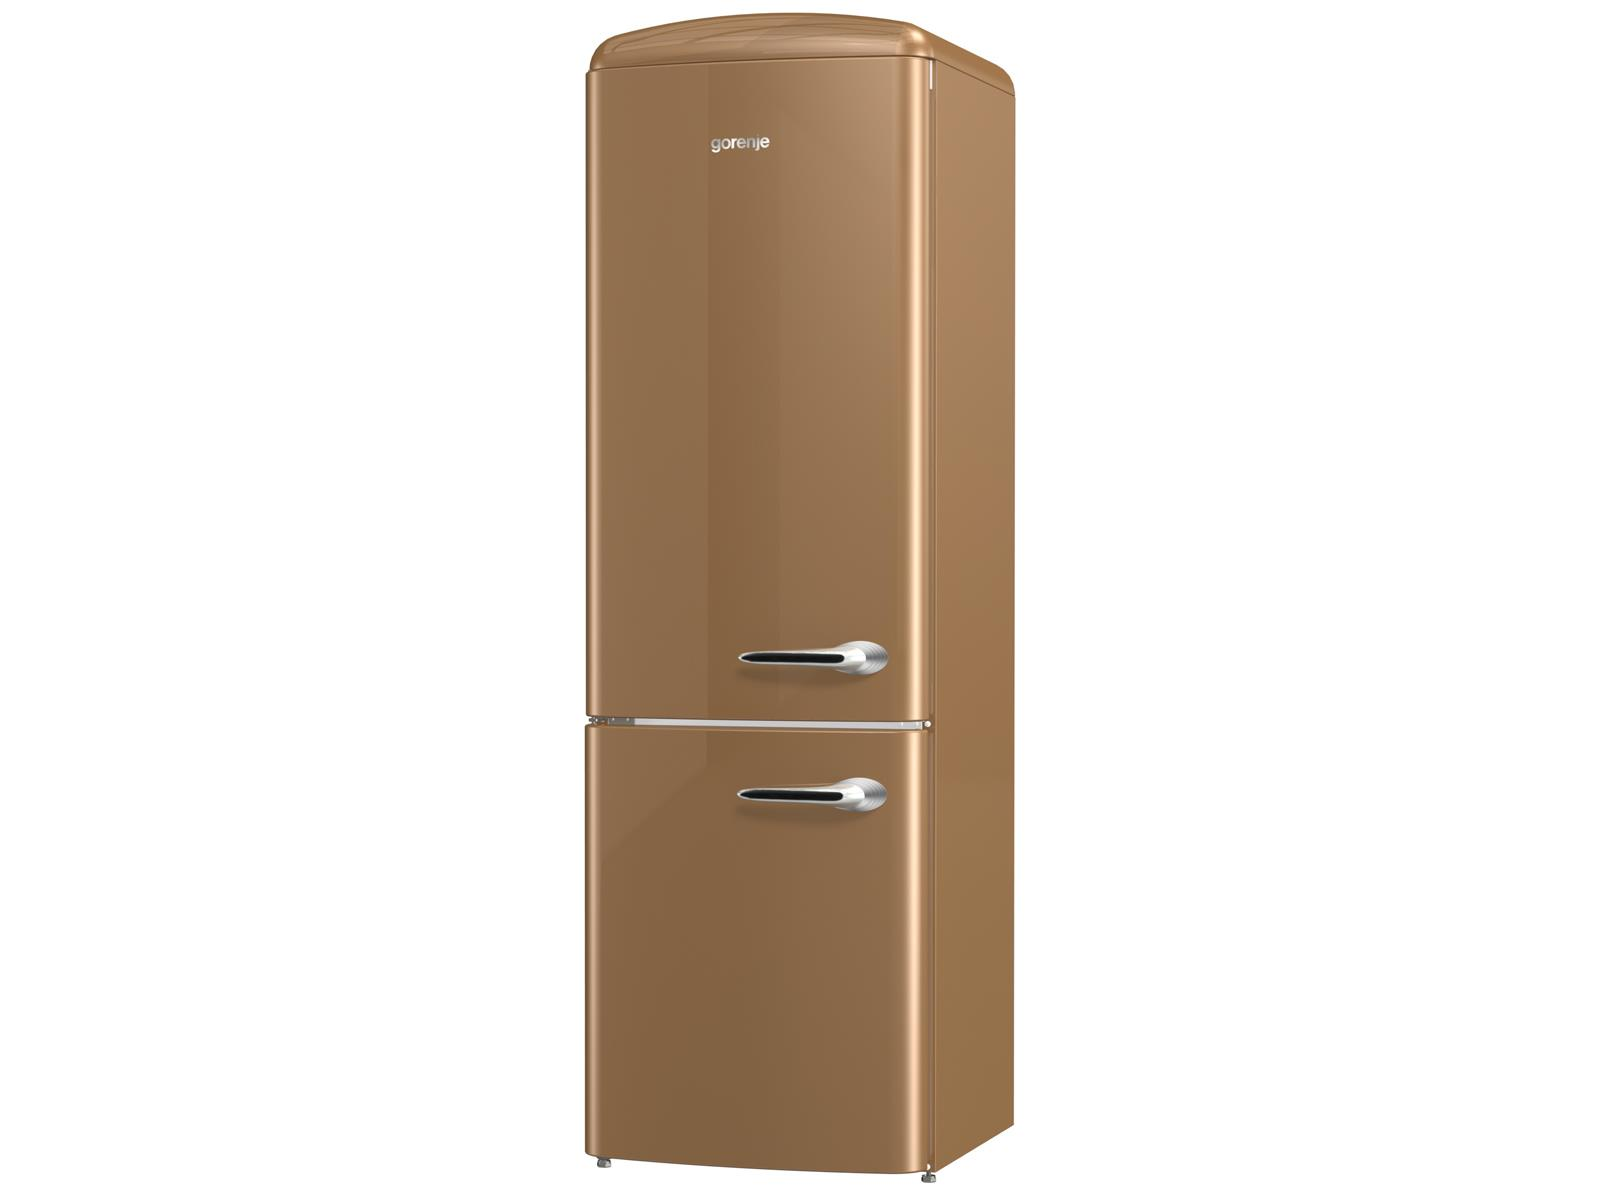 Gorenje Kühlschrank Filter : Gorenje ork co l kühl gefrierkombination royal coffee